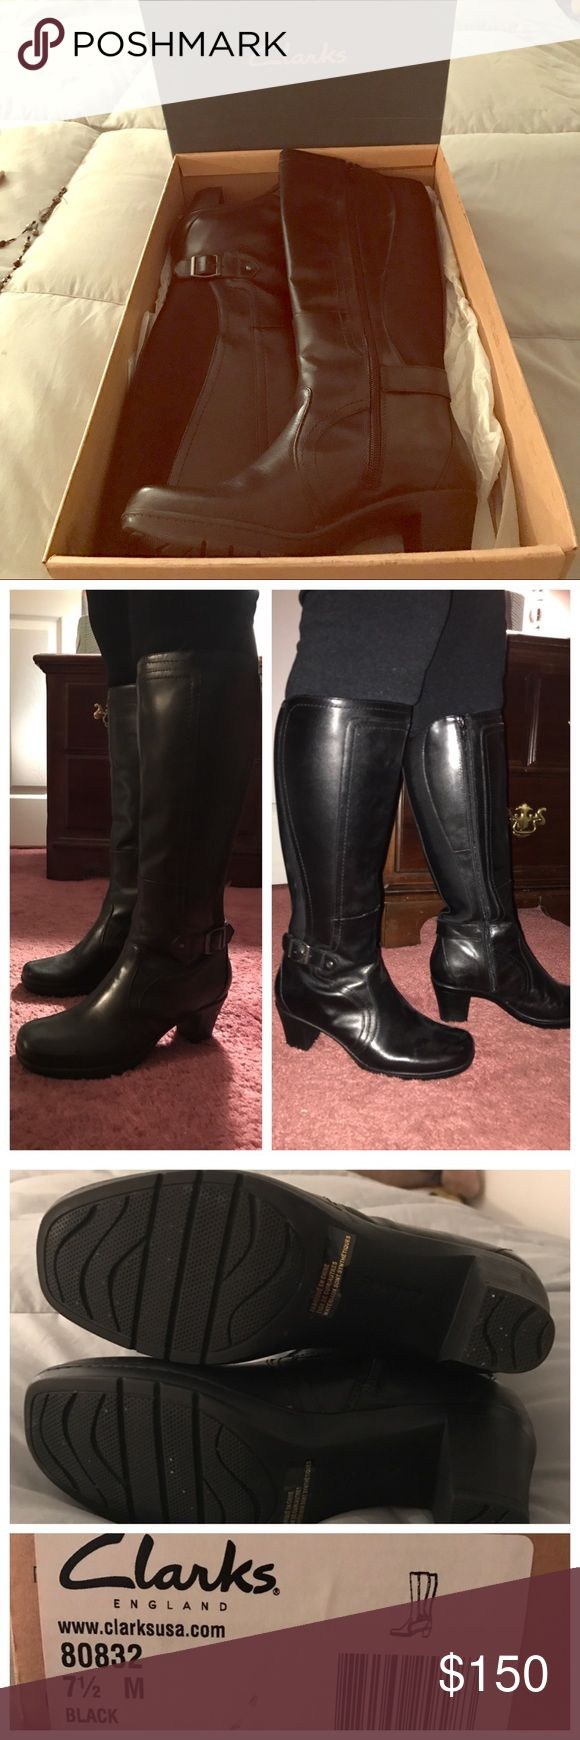 """SALE! $72 BUNDLED! BNIB CLARKS BLACK LEATHER BOOTS OMG 😲😲How beautiful are these! Brand new in box, never worn, these need a new home! Clarks is known for amazing quality leather, these do not disappoint! Super stylish but still comfortable with 2 1/2"""" heel. Shaft height is 13 1/2"""" from base of the sole. Regular calf width, not wide nor slim. Silver hardware. Please ask any/all questions before purchasing, happy to help! These are my mom's boots, she does not NEED to sell them, so please…"""